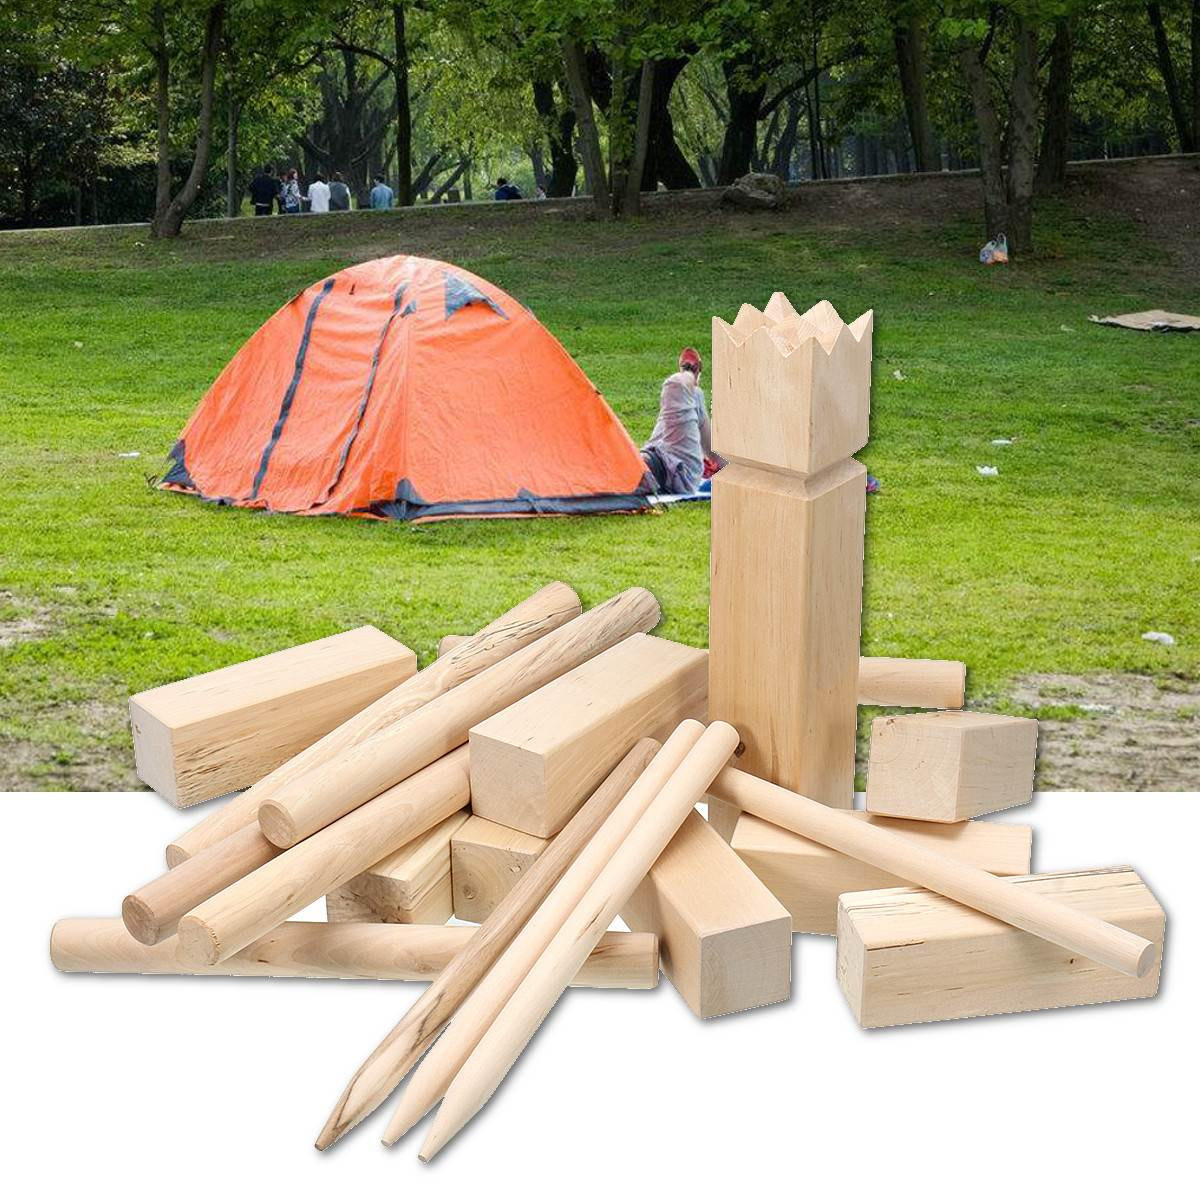 Wooden Game Kubb Set 21PCS Birch Family Garden Lawn Game Toy Bowling Block Outdoor Fun Chess Boules Toy Sports Party CampingWooden Game Kubb Set 21PCS Birch Family Garden Lawn Game Toy Bowling Block Outdoor Fun Chess Boules Toy Sports Party Camping